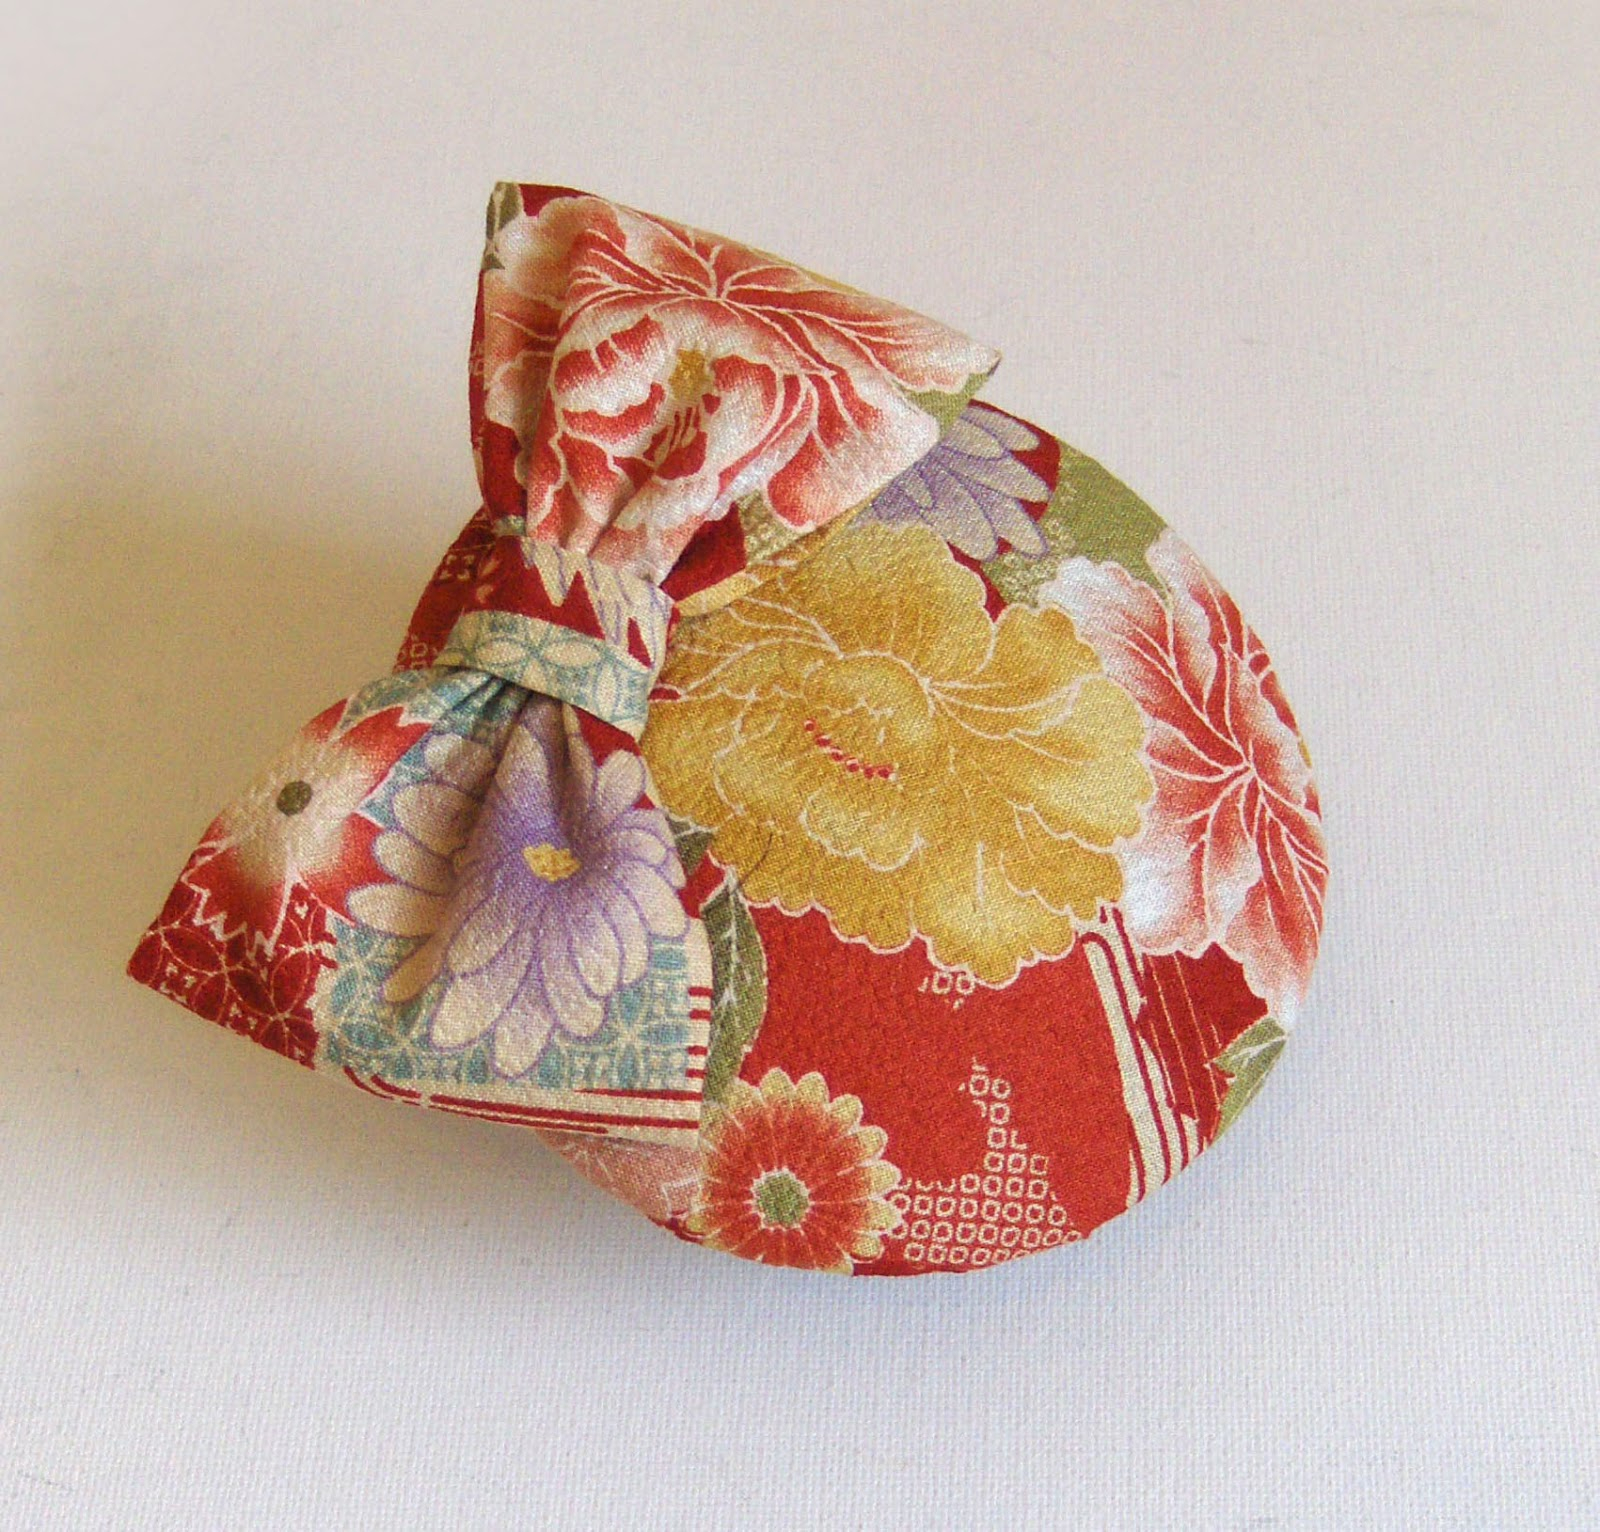 http://folksy.com/items/4415516-Cocktail-hat-kimono-silk-red-with-bow-